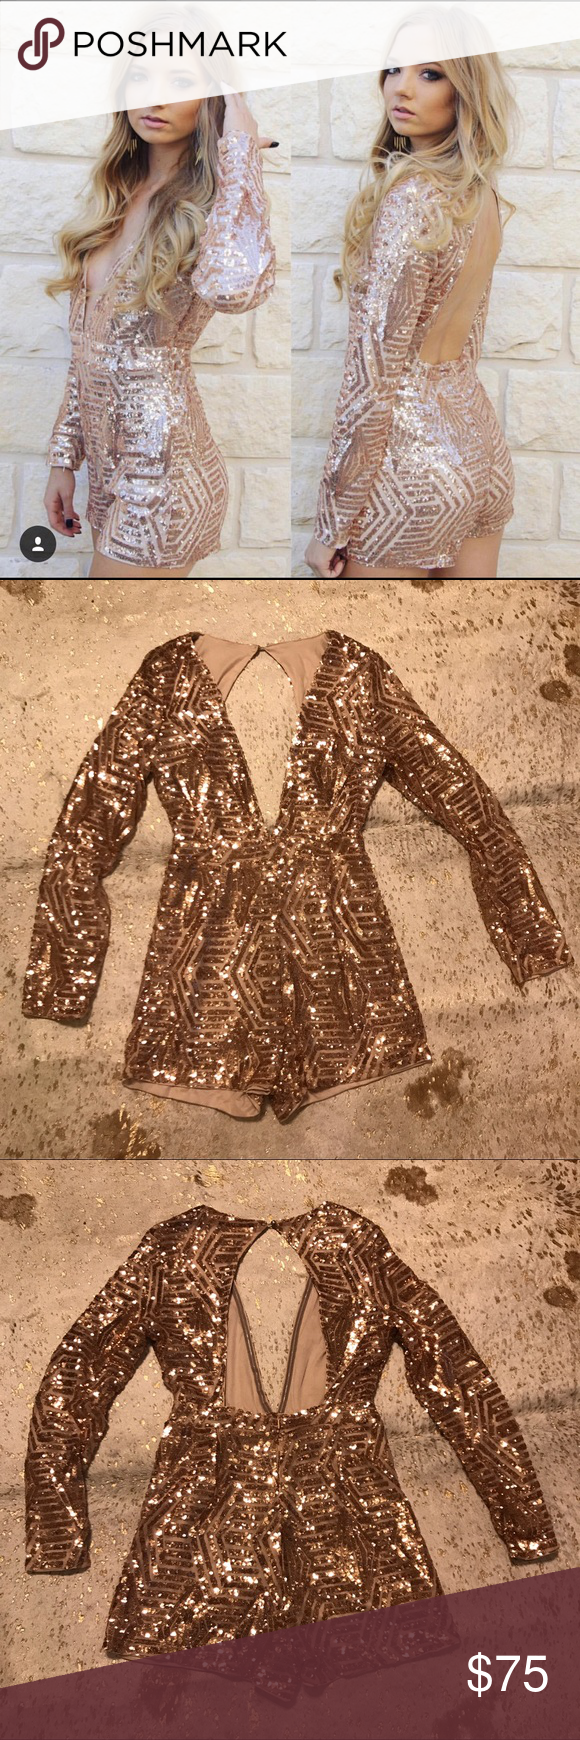 Nwt rose gold sequin romper nwt sweet pinterest